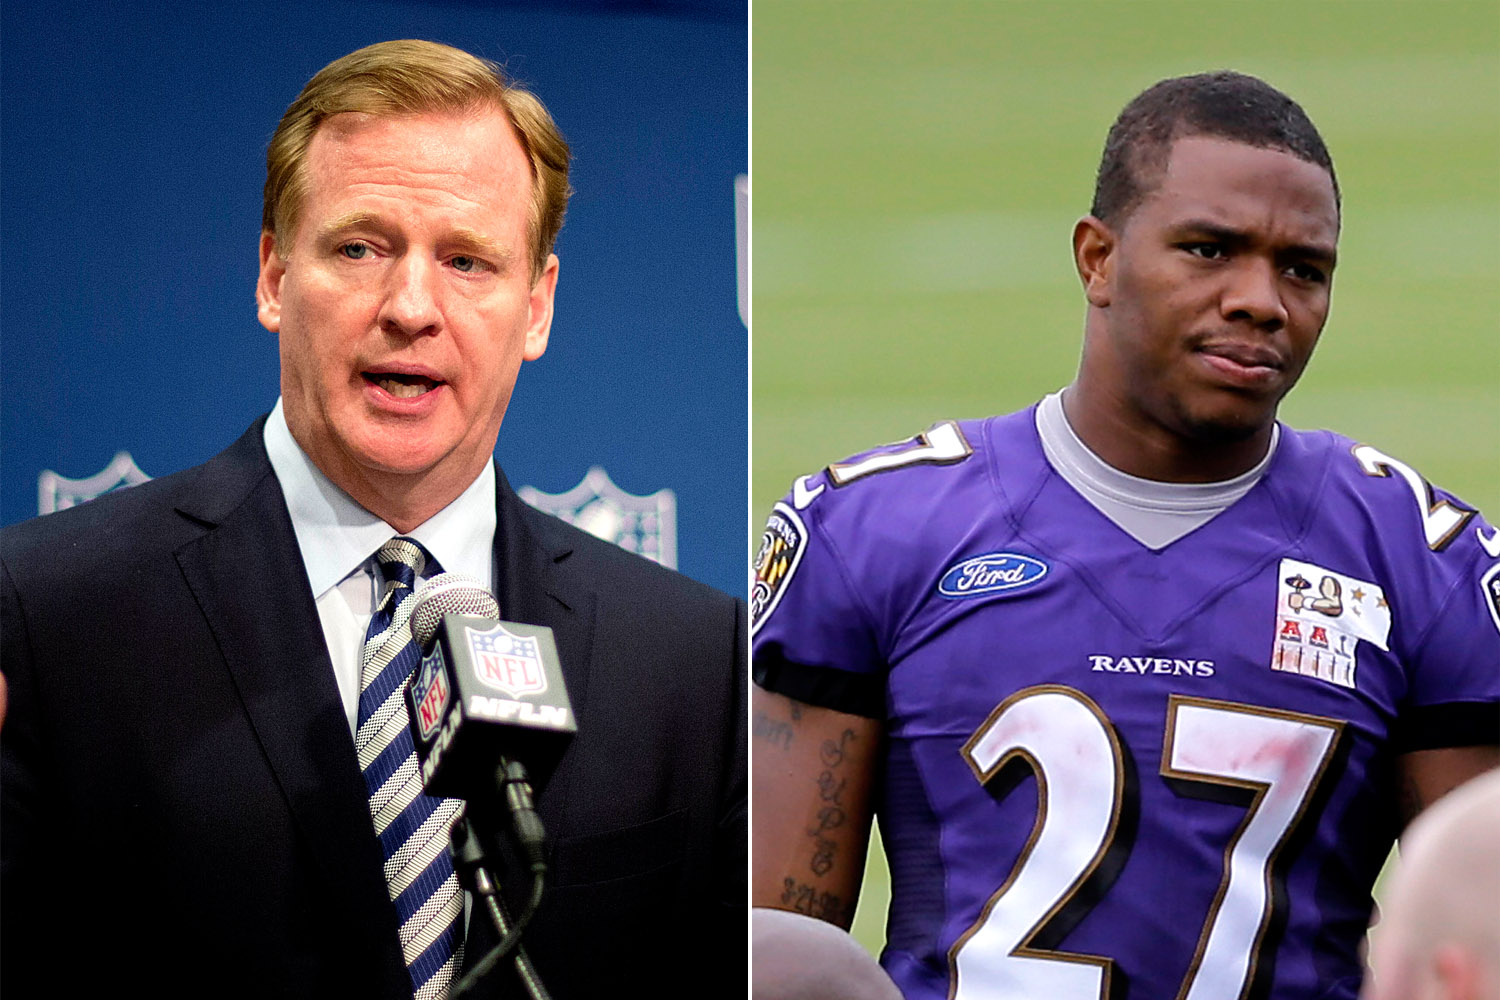 Top 7 Choices To Replace NFL Commish Roger Goodell